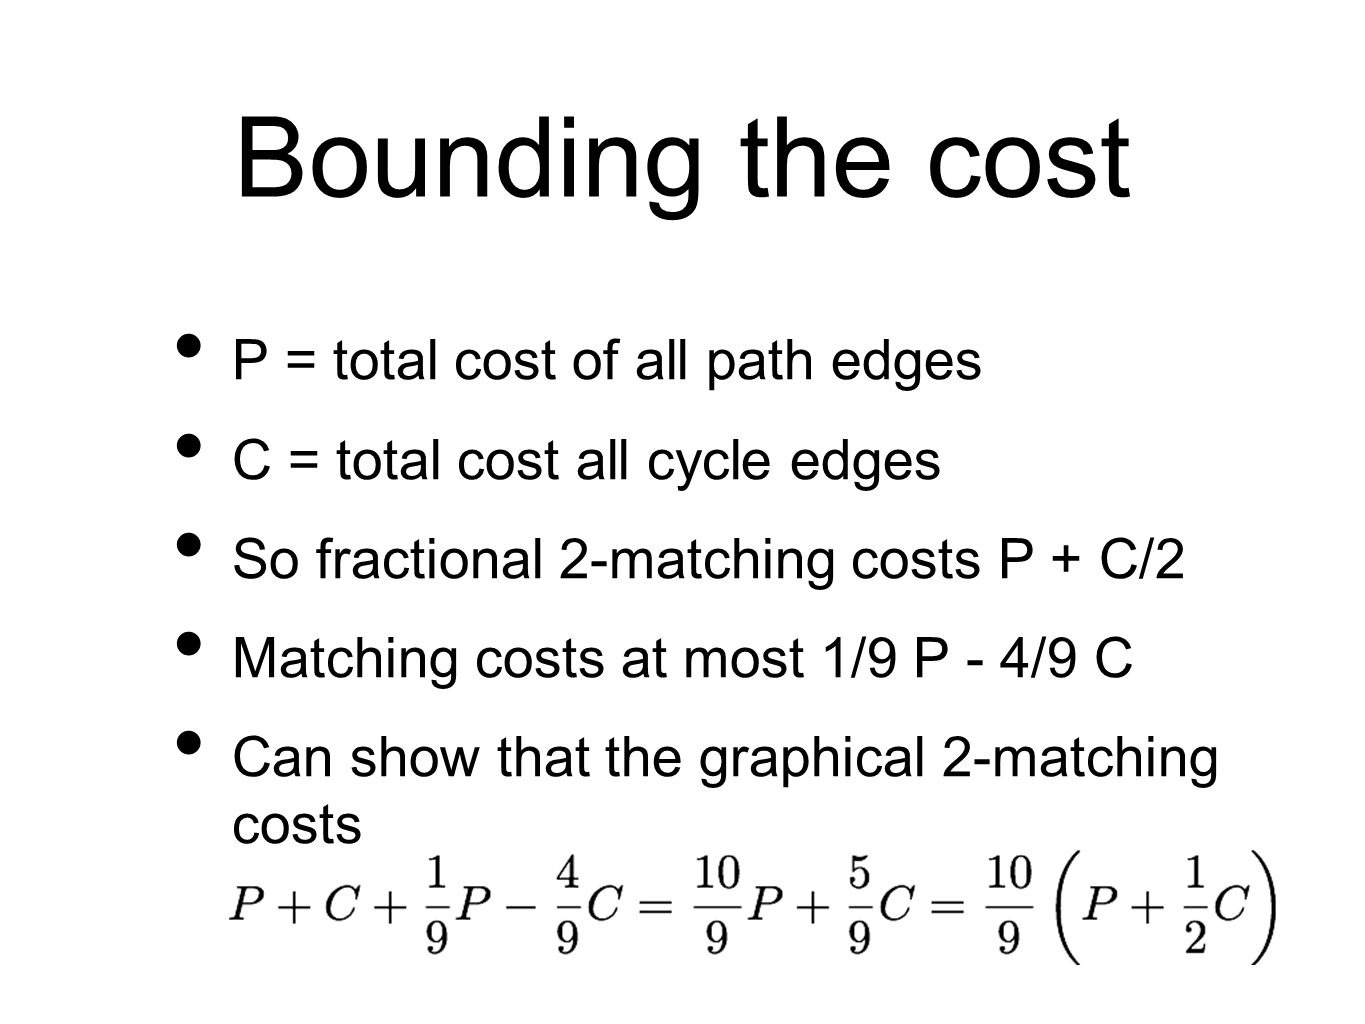 Bounding the cost P = total cost of all path edges C = total cost all cycle edges So fractional 2-matching costs P + C/2 Matching costs at most 1/9 P - 4/9 C Can show that the graphical 2-matching costs